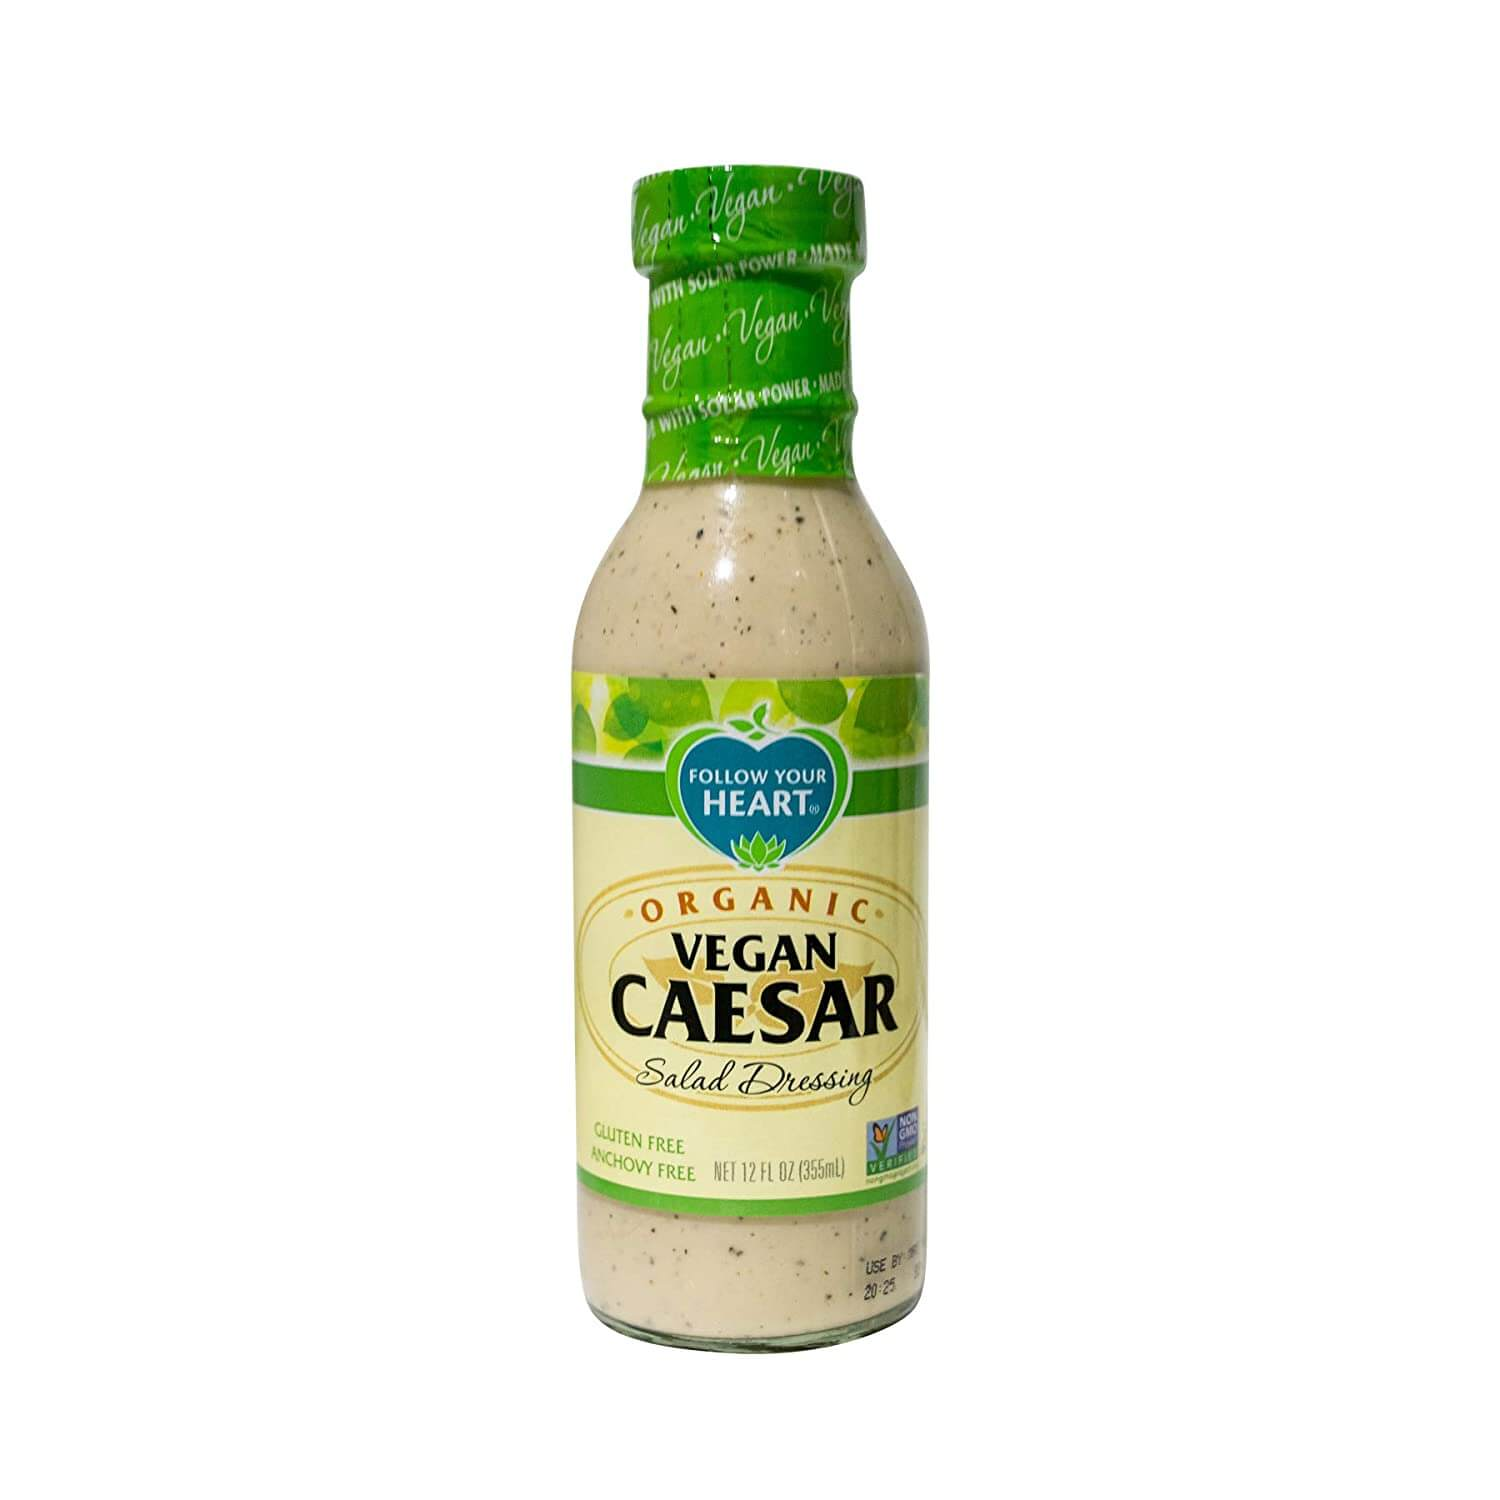 Follow Your Heart Organic Vegan Caesar Dressing